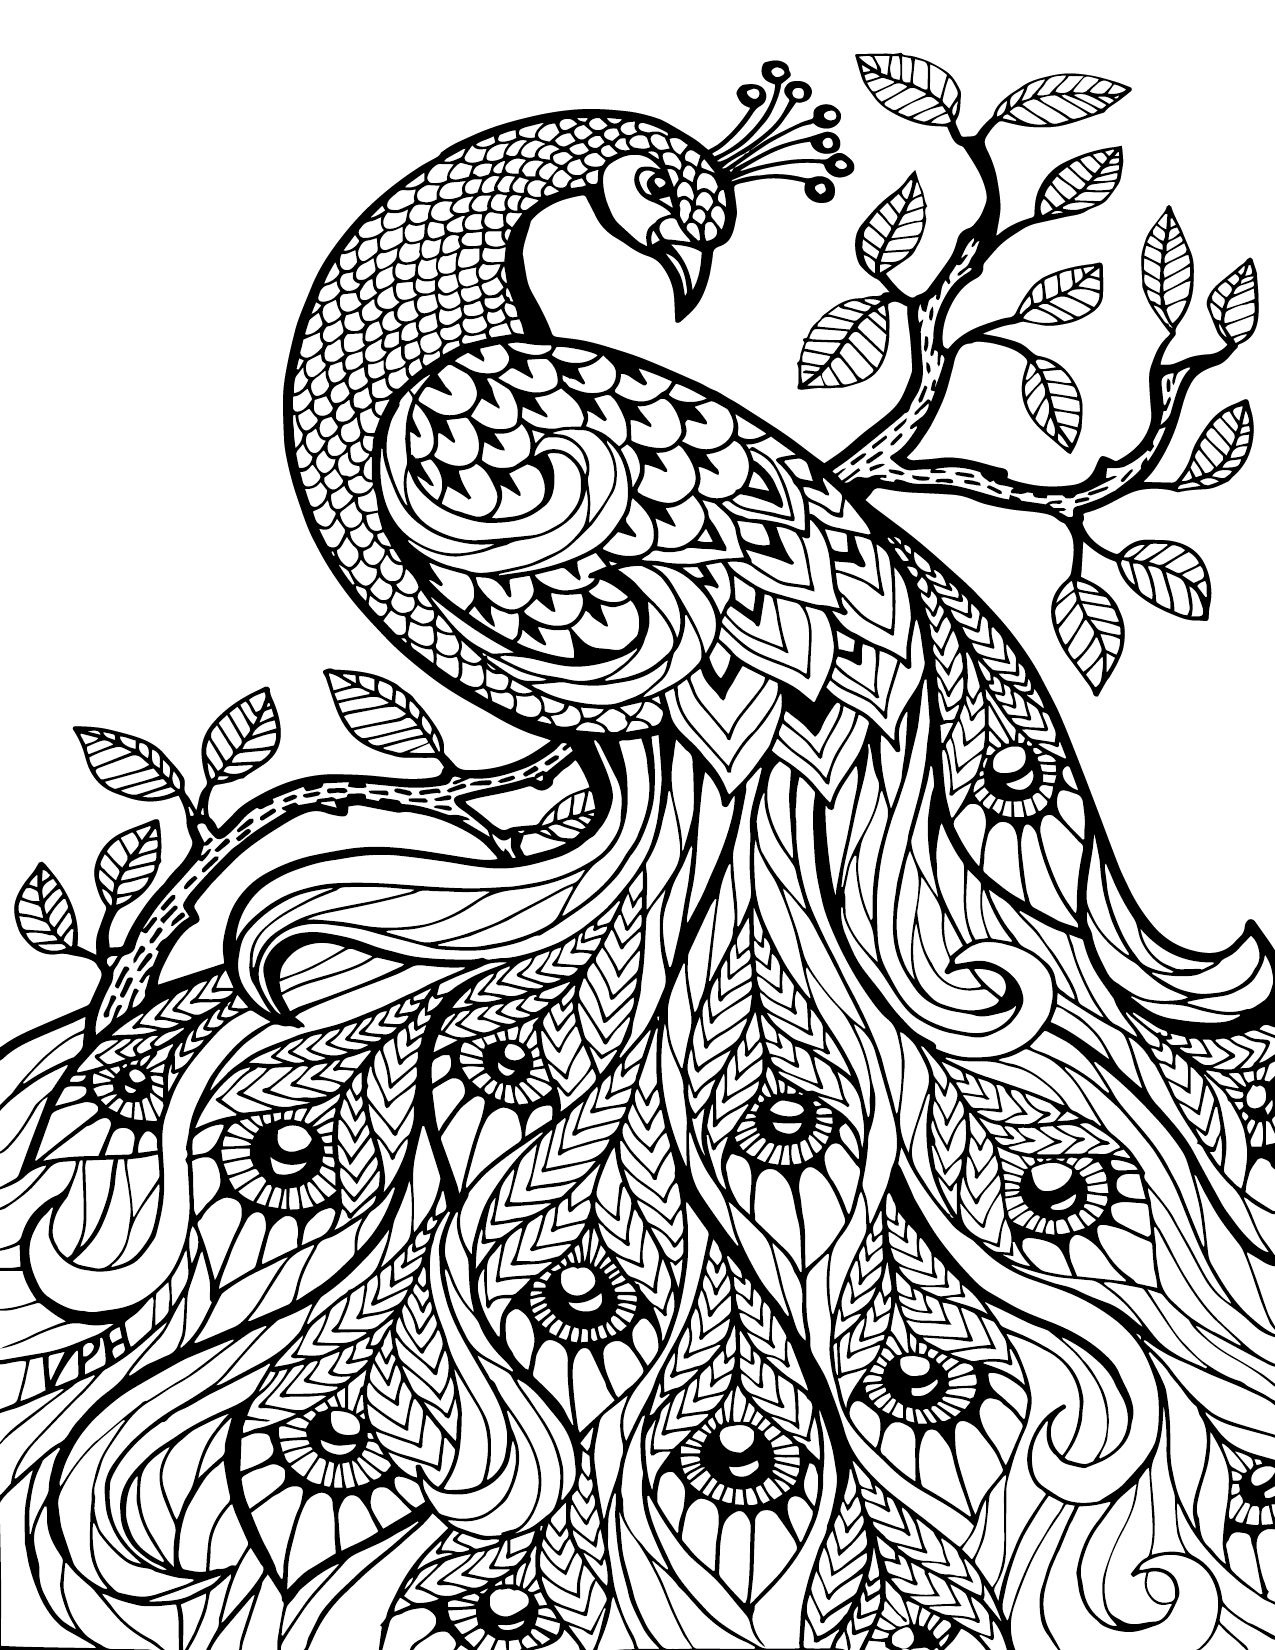 Free Printable Coloring Pages For Adults Only Image 36 Art - Free Printable Coloring Books